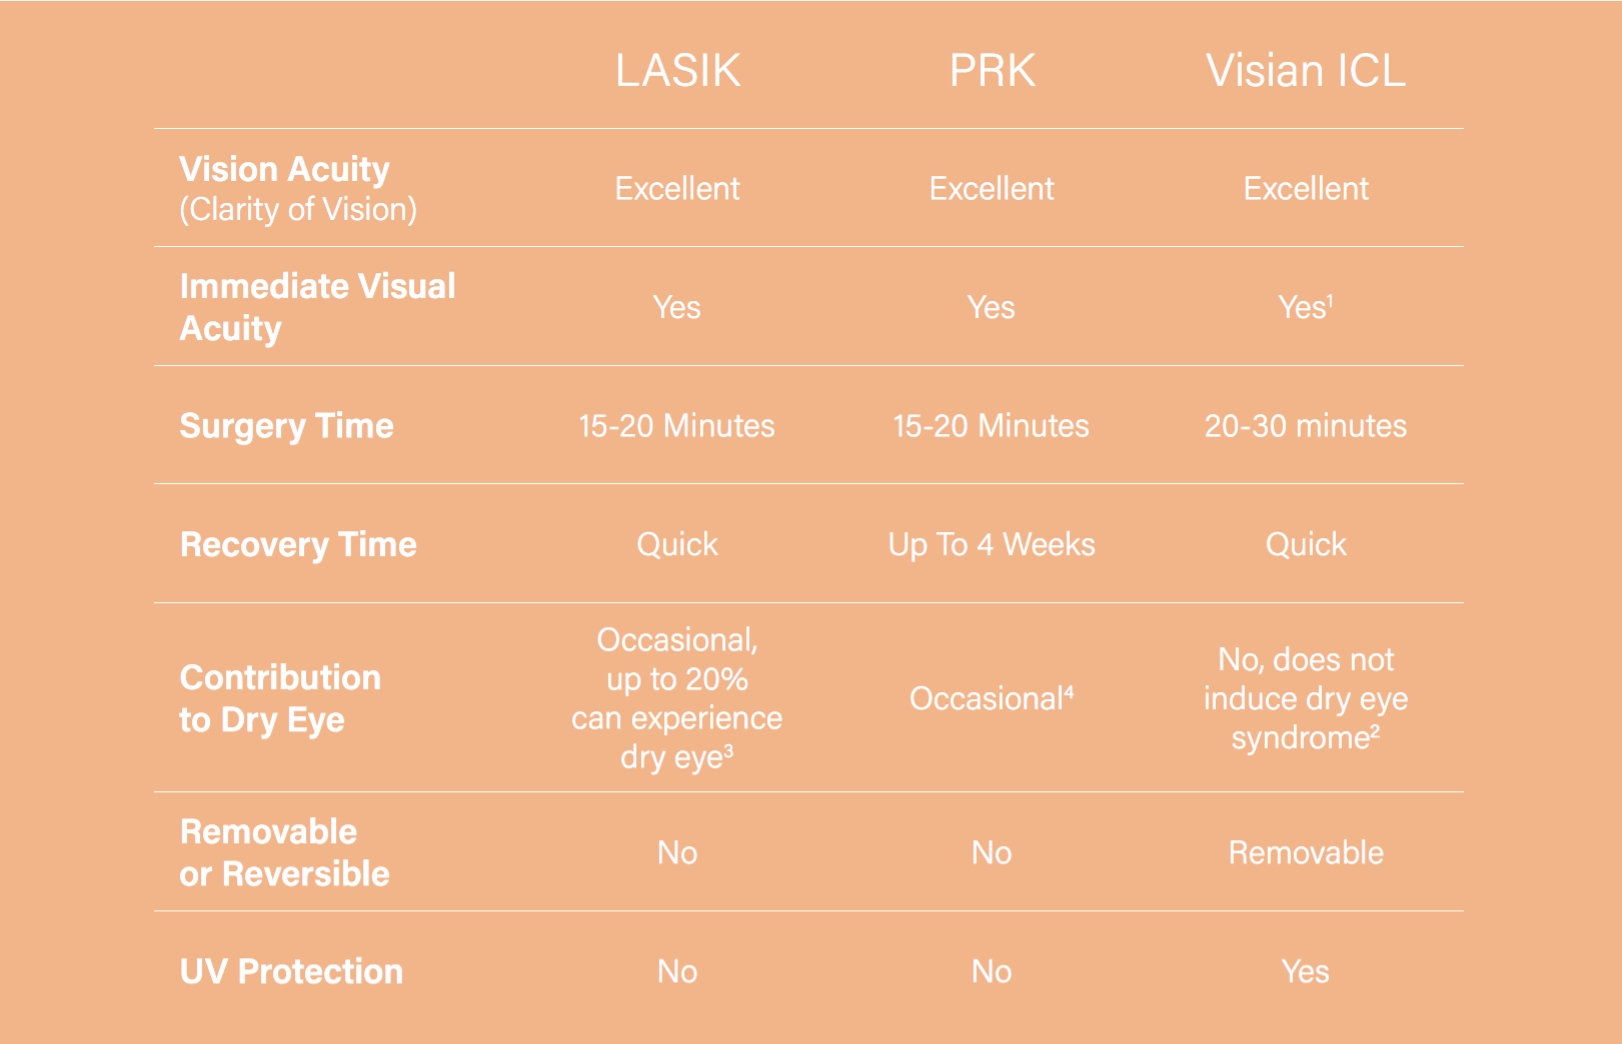 LASIK PRK and Visian ICL